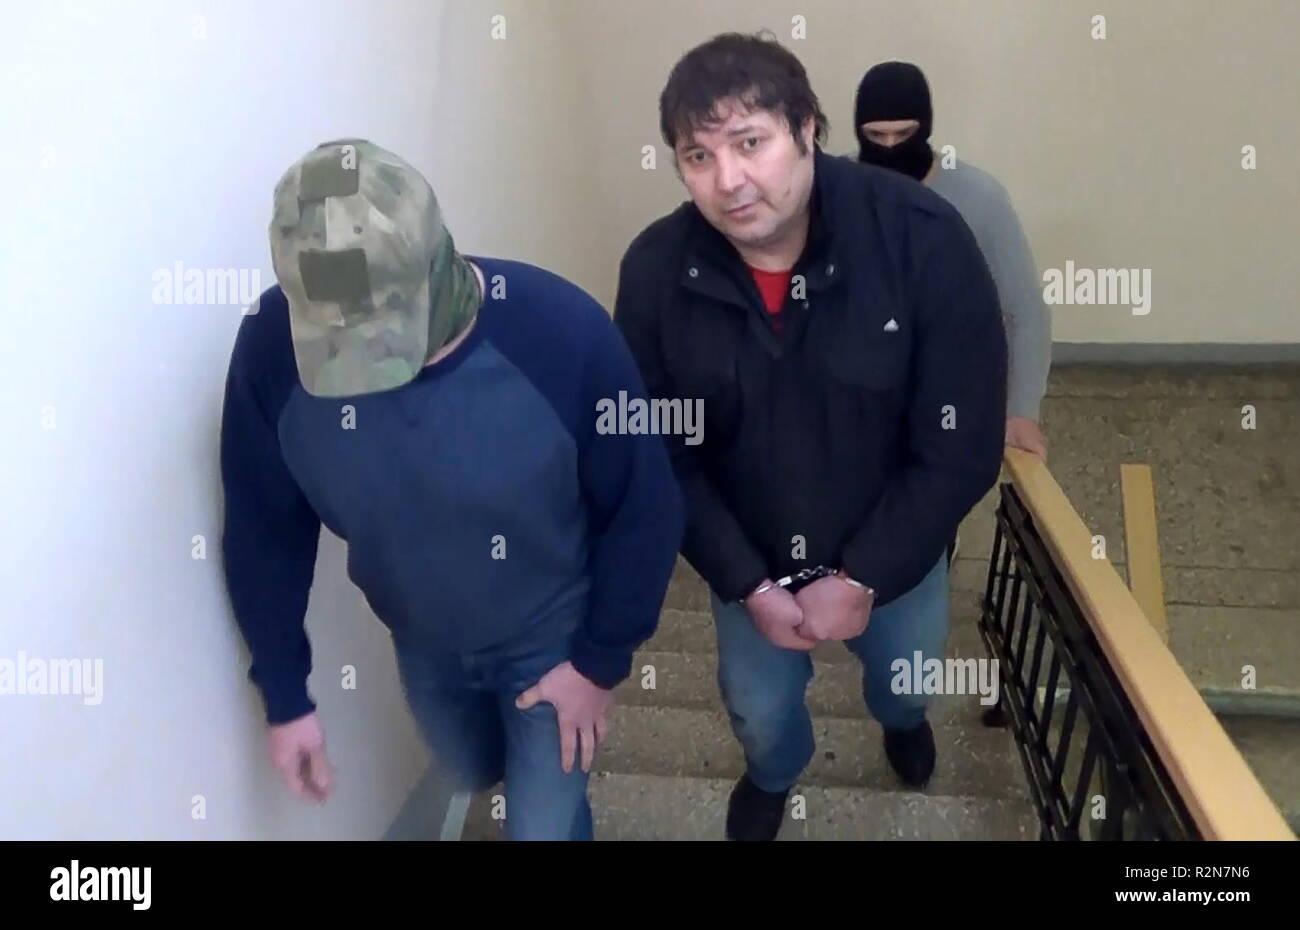 MOSCOW, RUSSIA - NOVEMBER 20, 2018: Pictured in this video grab is Khazvakha Cherkhigov (R front) during his detention in Moscow; Cherkhigov is suspected of being involved in a 14 June 1995 attack on a hospital in Budyonnovsk, Stavropol Territory, by a group of rebels led by Shamil Basayev which resulted in a hostage crisis. Video grab/Public Relations Centre of the Russian Federatl Security Service/TASS - Stock Image